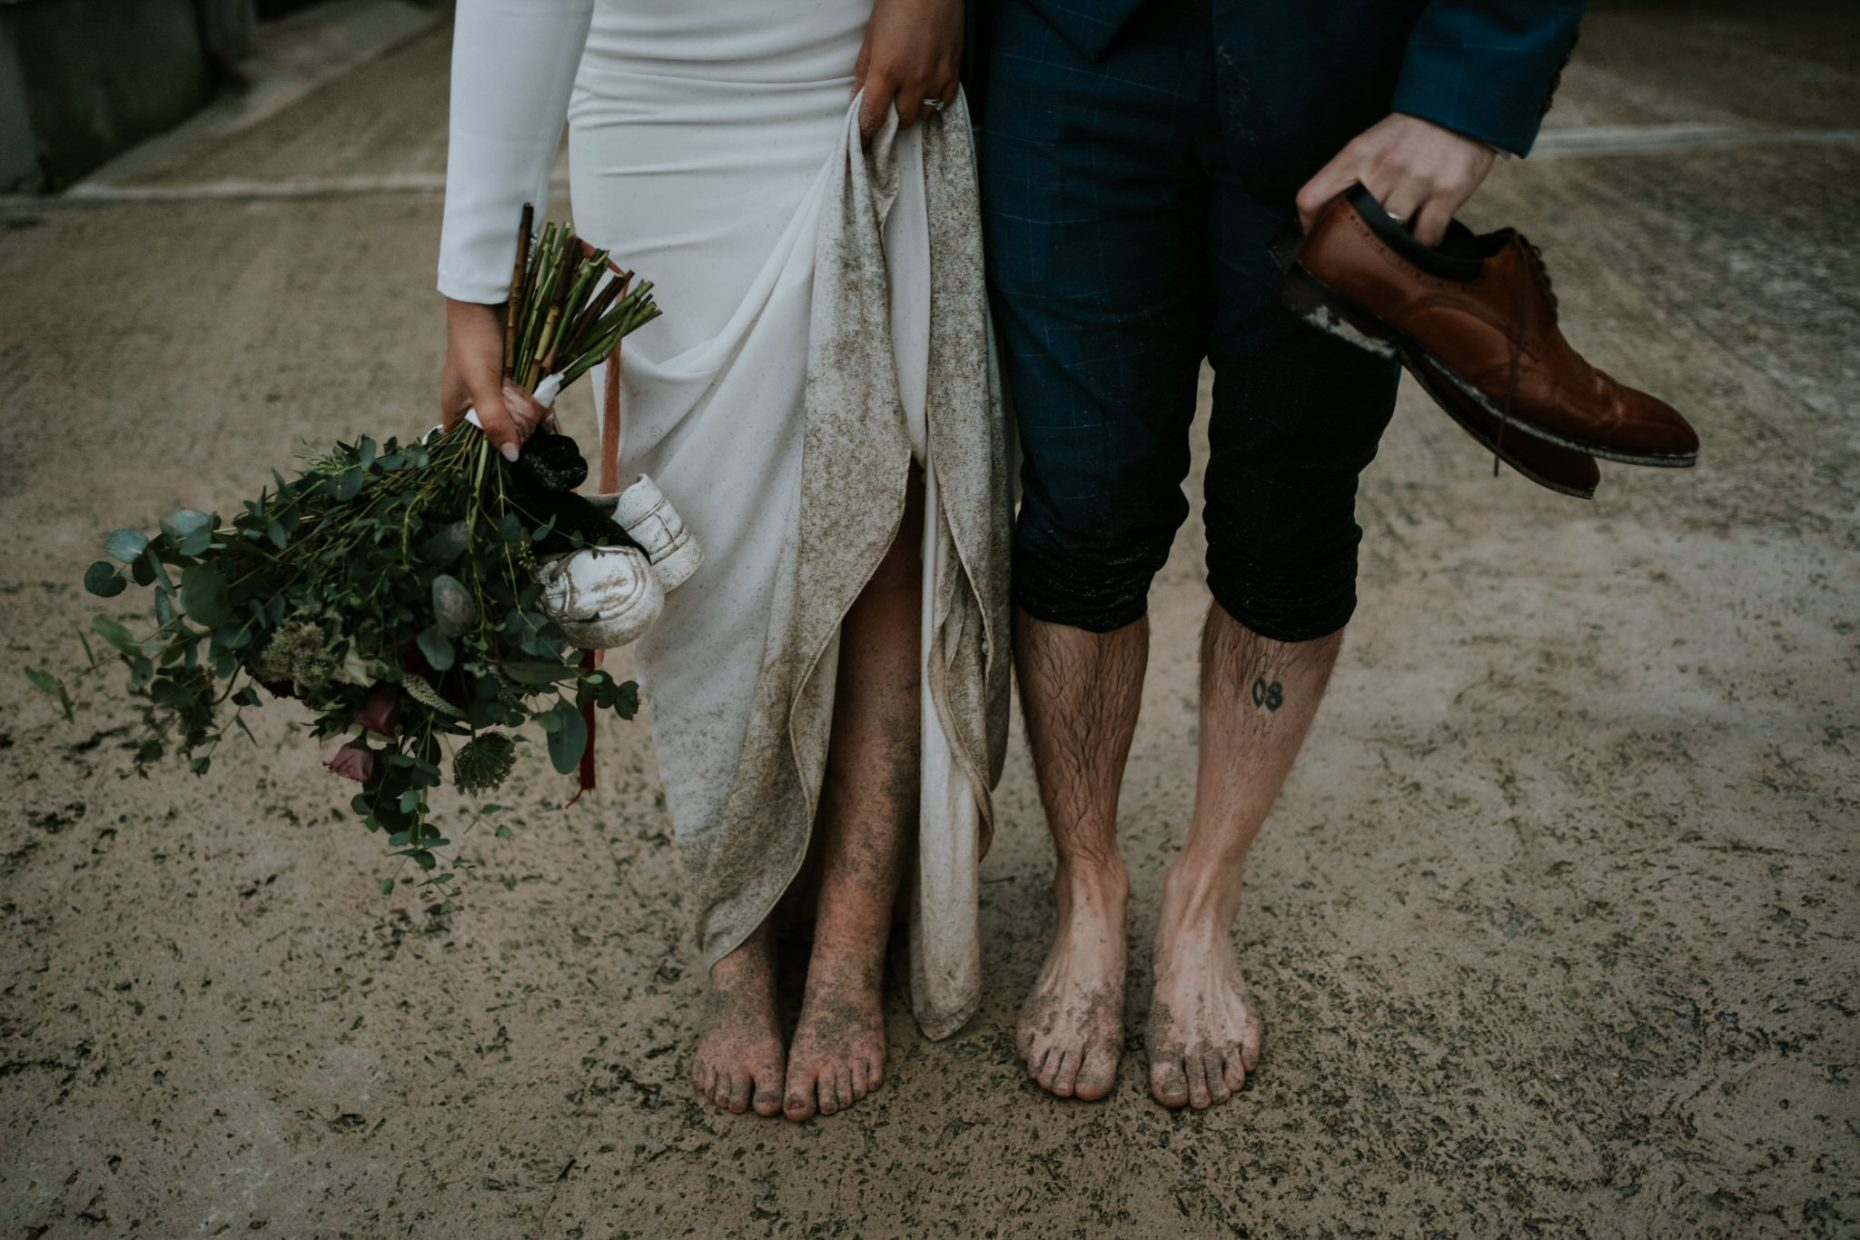 a bride and groom stand barefoot covered in wet sand and dirty holding their shoes and bouquet in their hands